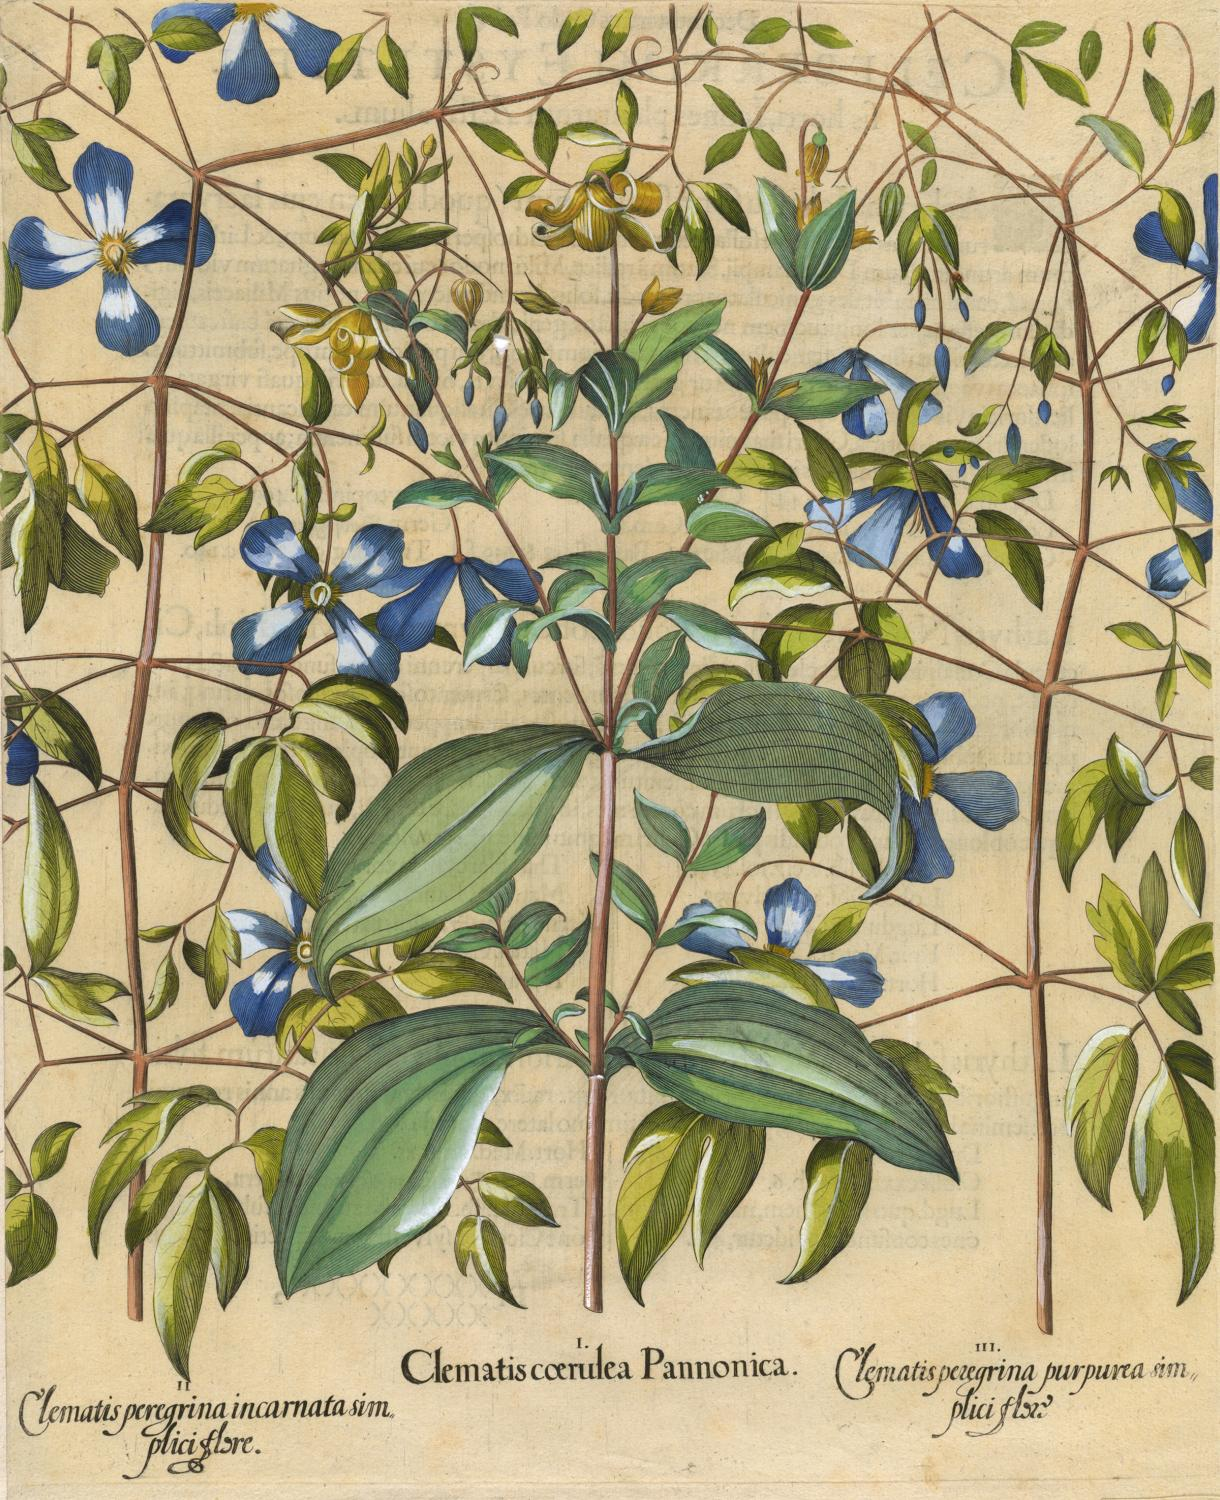 Unknown Artist, I. Clematis coerulea Pannonica; II. Clematis peregrina incarnata simplici flore; III. Clematis peregrina purpurea simplici flore (vine bower and blue clematis), from Basilius Besler, Hortus Eystettensis, Nürnberg, 1613. Hand-colored engrav